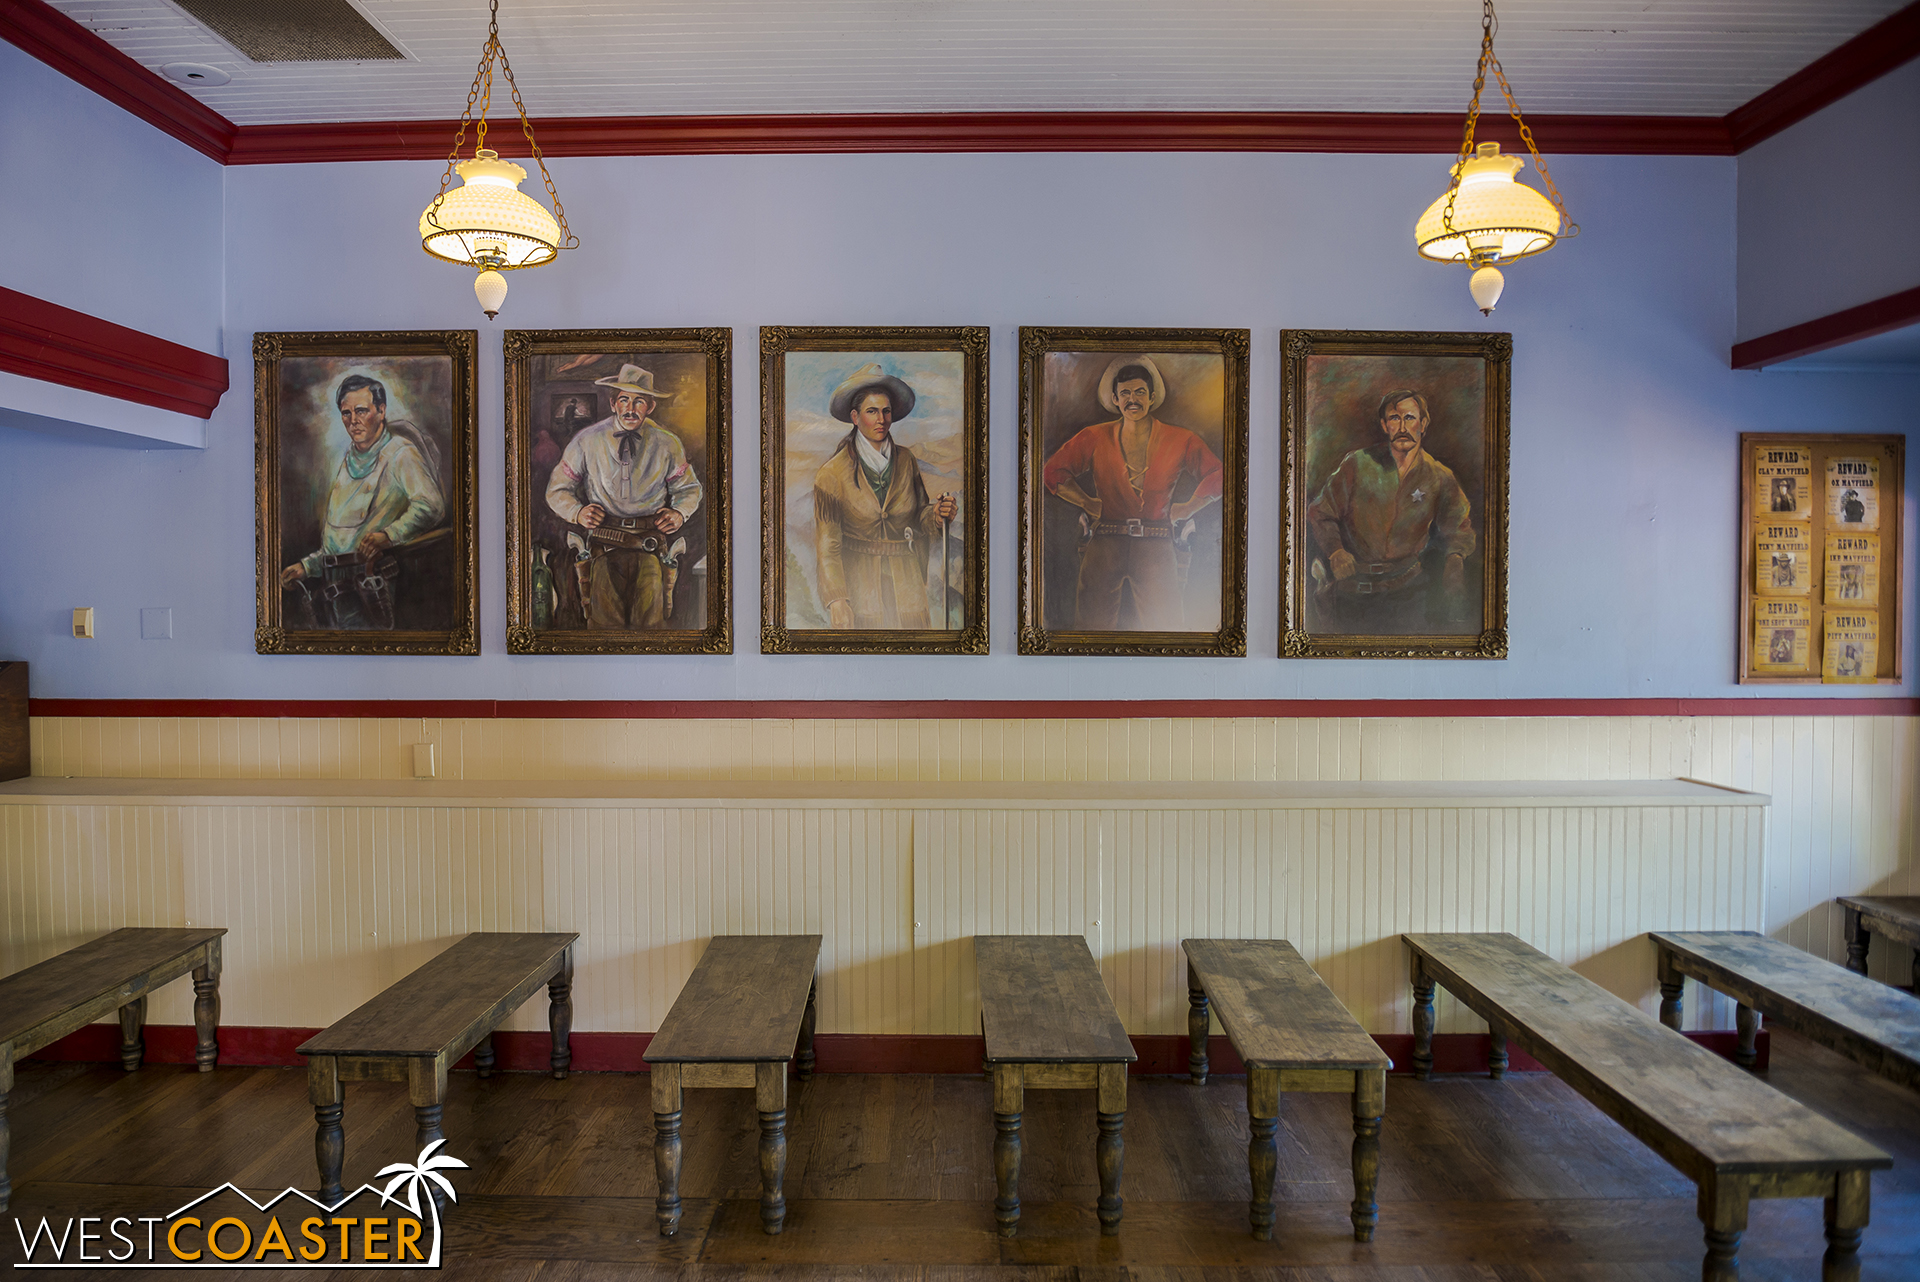 The room has been switched over from its Boysenberry Festival and has portraits of Calico's [fictitious] historical figures, including the matriarch of the Mayfield clan in the middle there.